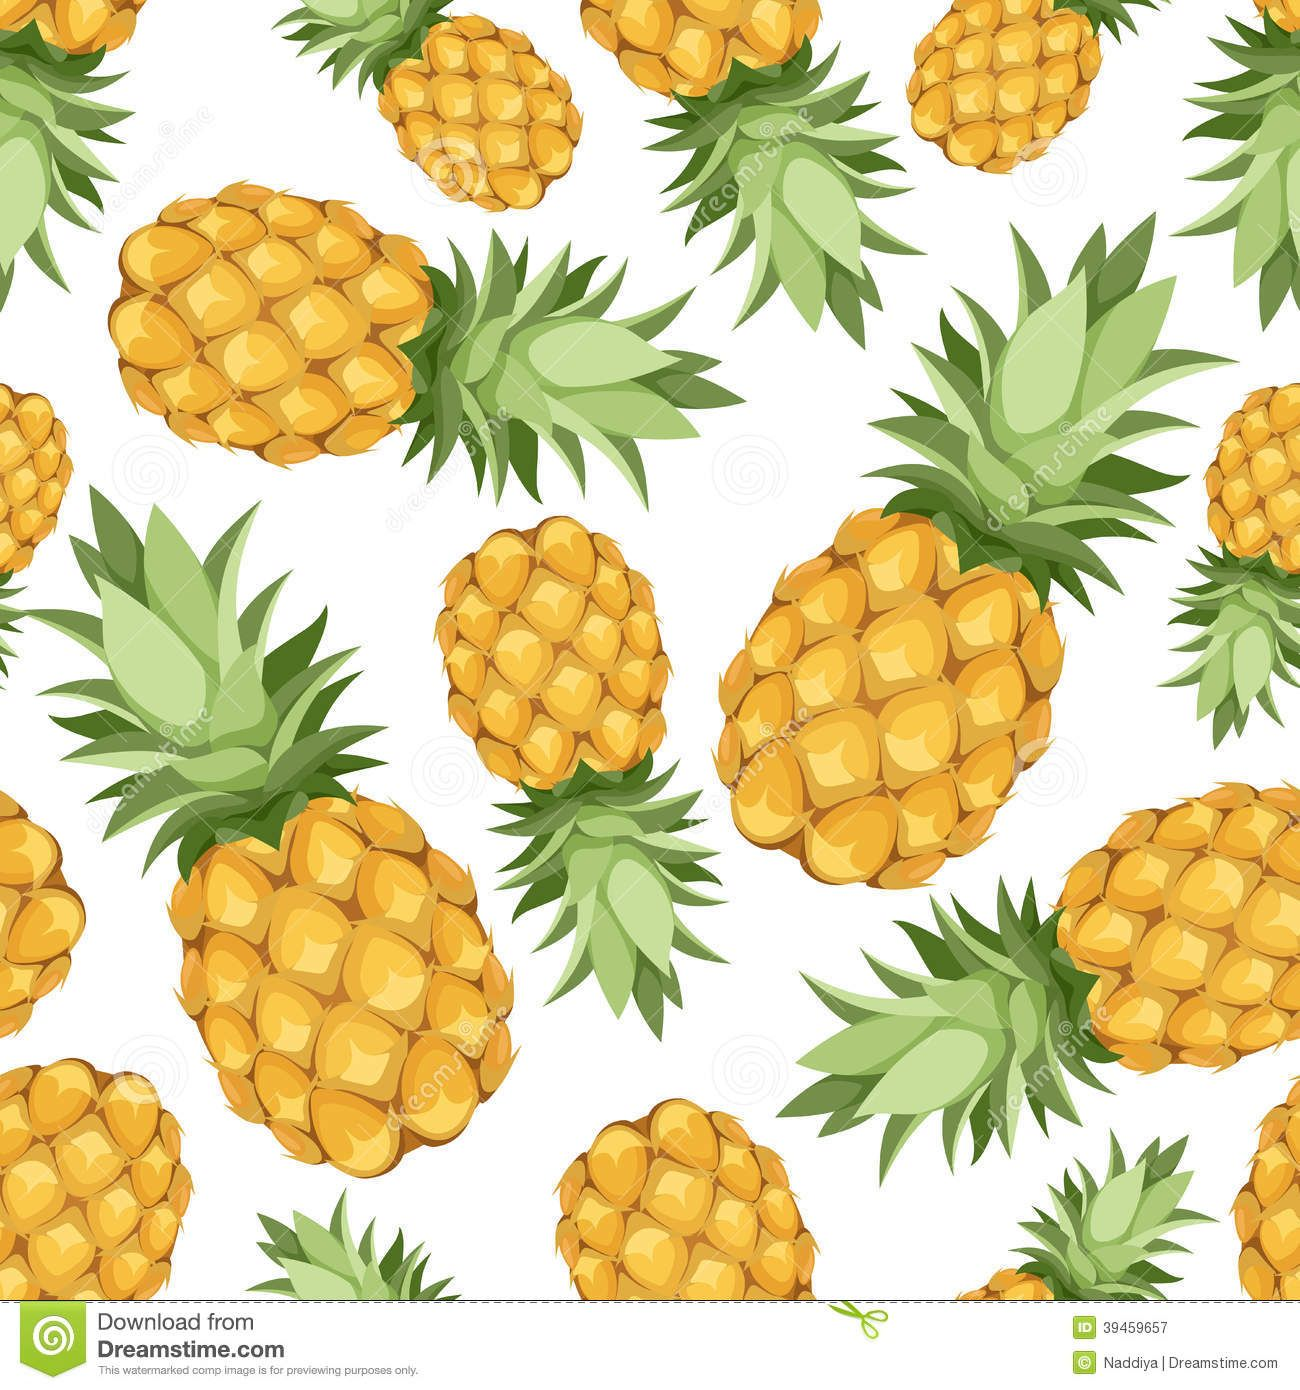 Pineapples buscar con google pinapples pinterest for Pineapple in the ground